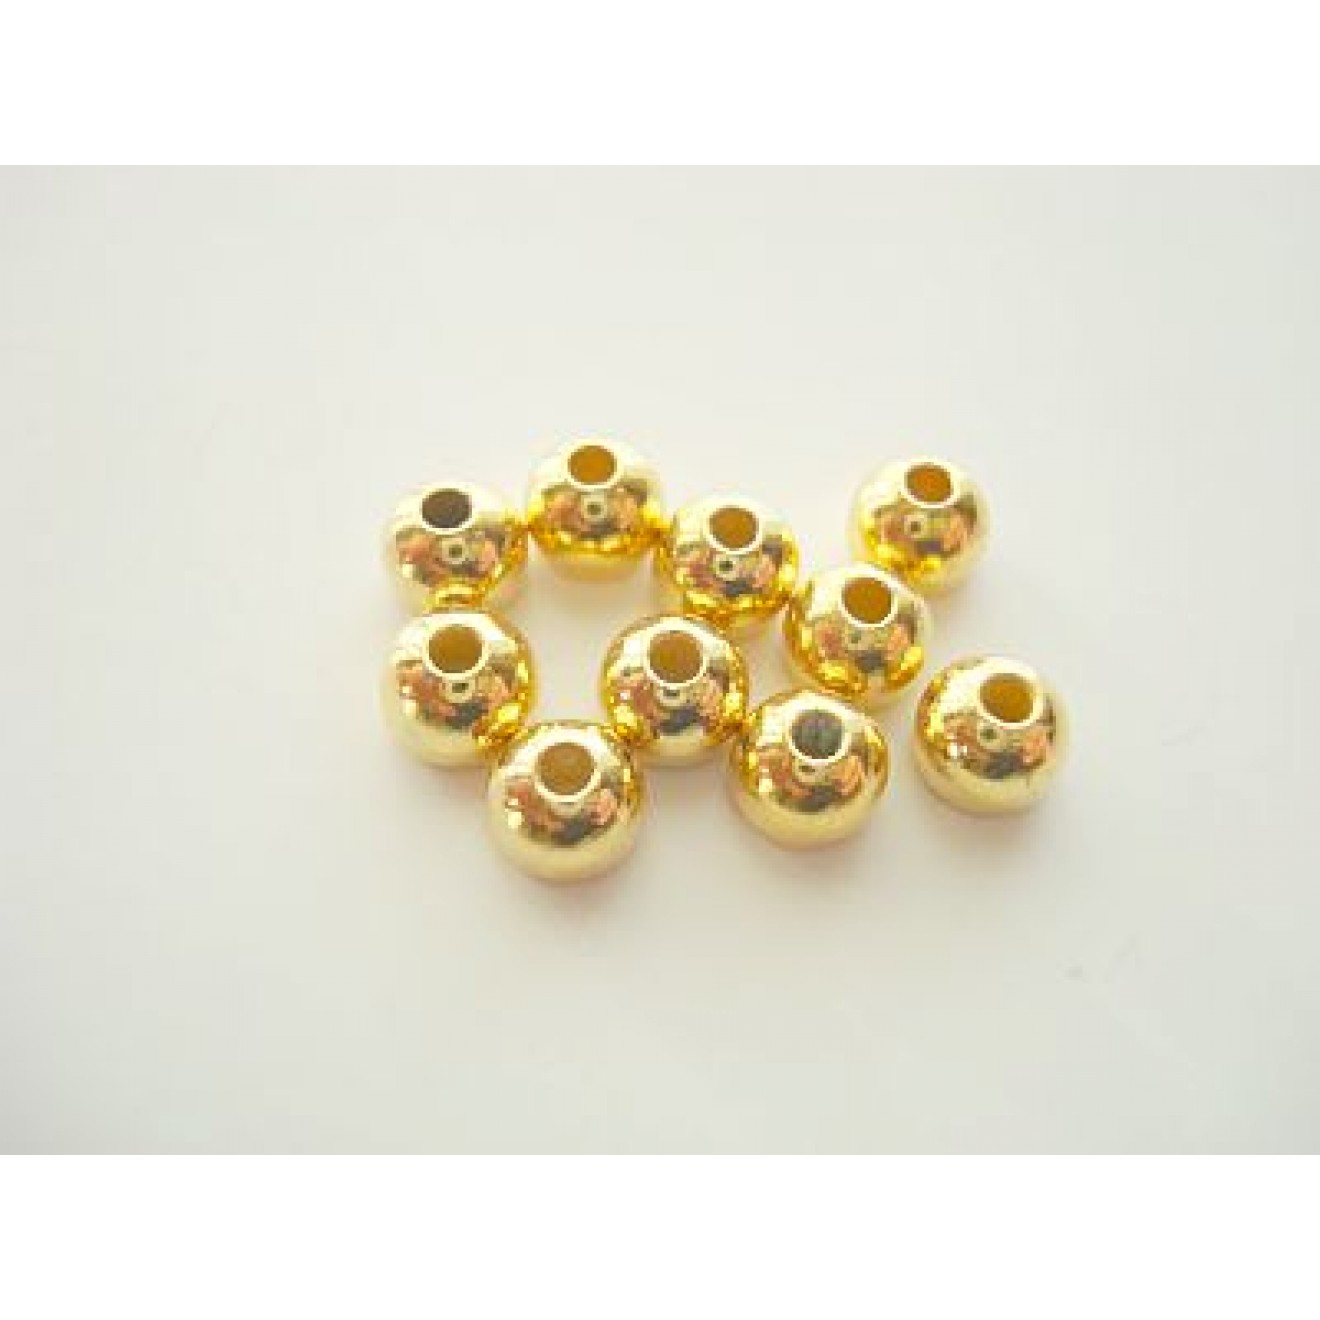 Tungstenperlen gold/2,3mm-10 Stck.